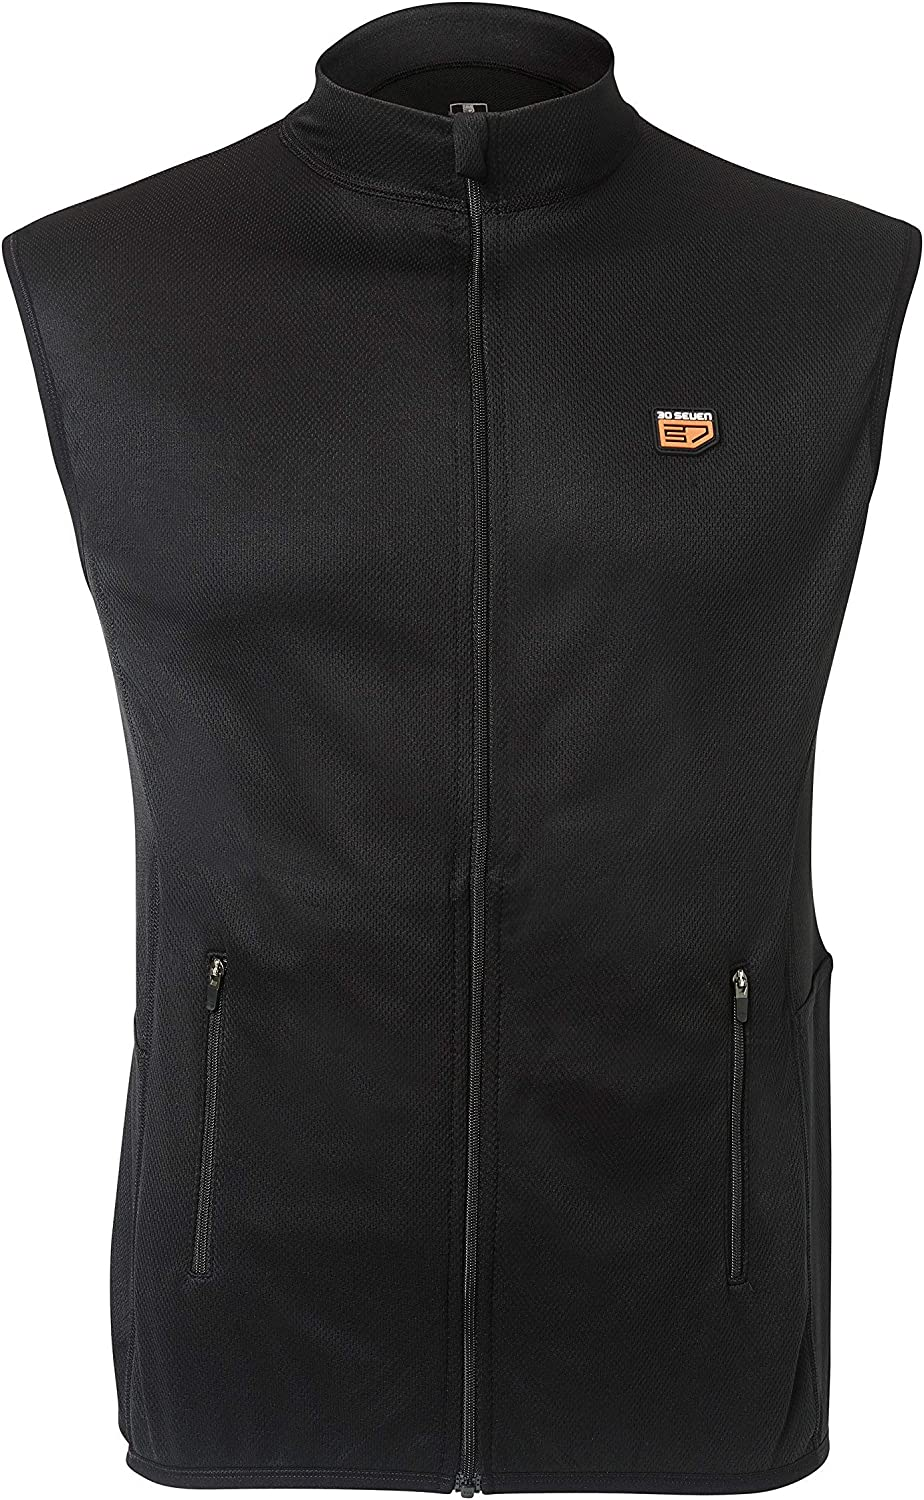 30seven Heated Vest — Regular Fit Sleeveless Base Layer with Zipper for Men or Women with Rechargeable Battery